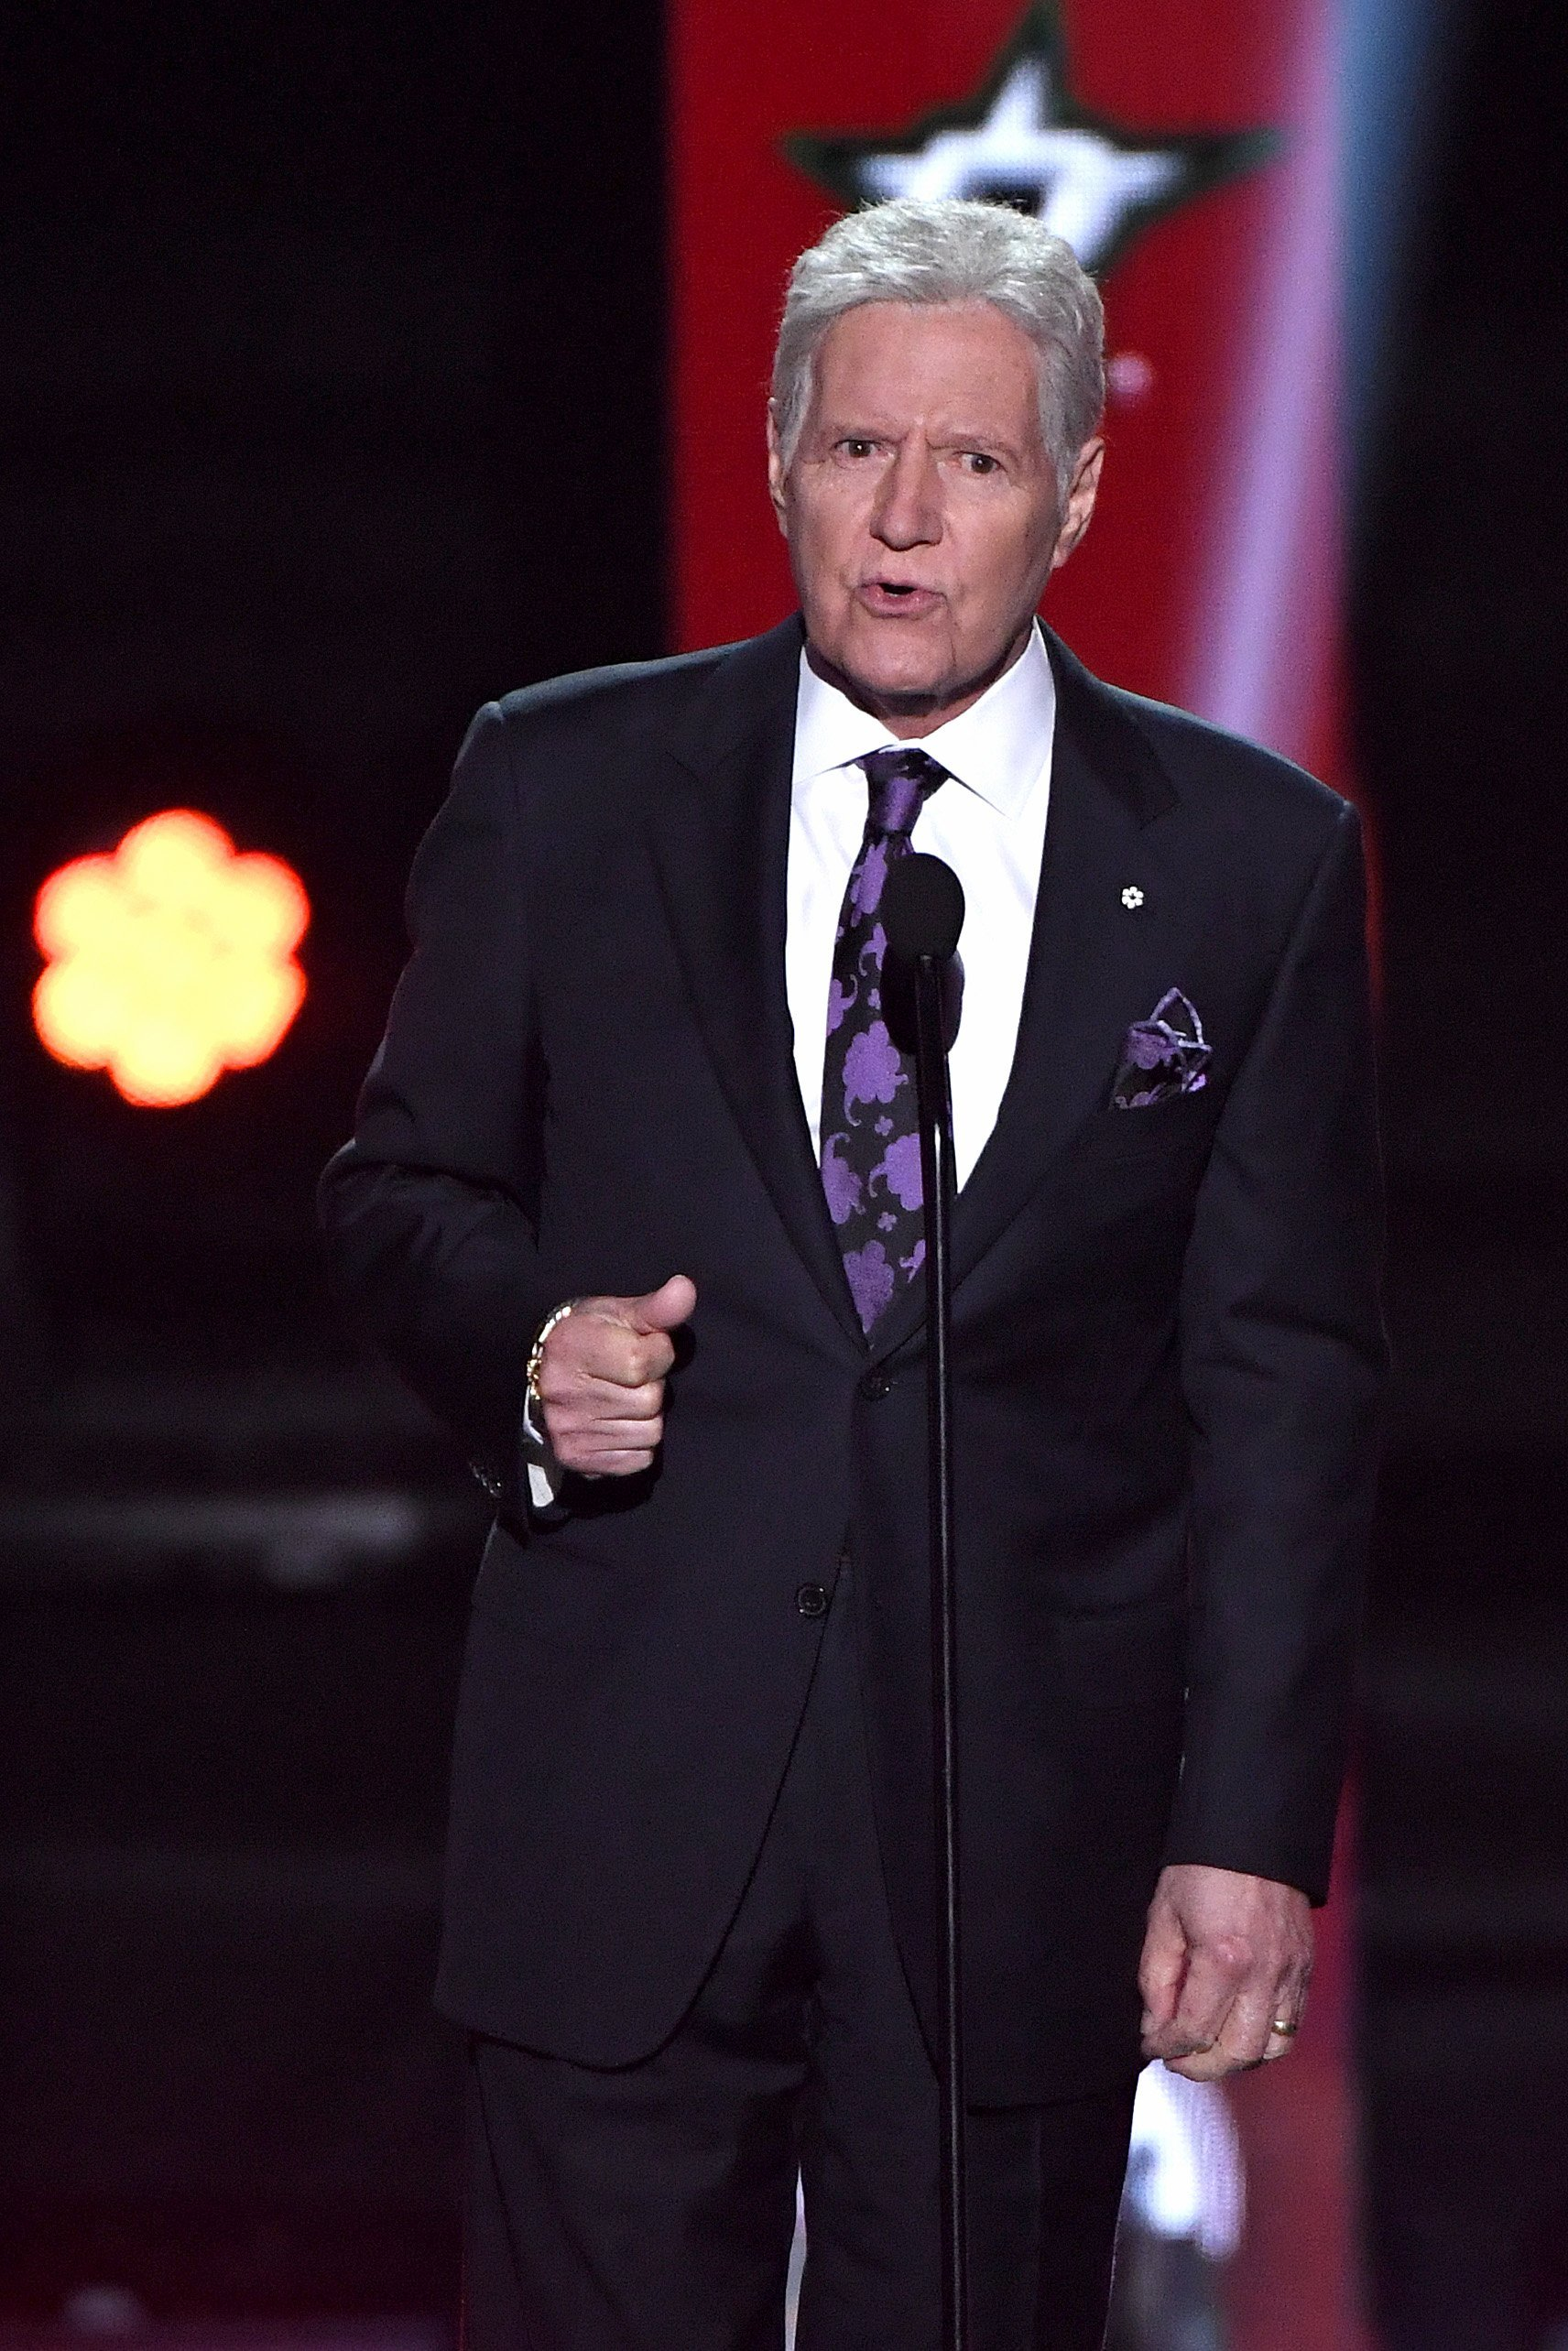 Alex Trebek presents the Hart Memorial Trophy during the 2019 NHL Awards on June 19, 2019, in Las Vegas, Nevada. | Photo: Getty Images.